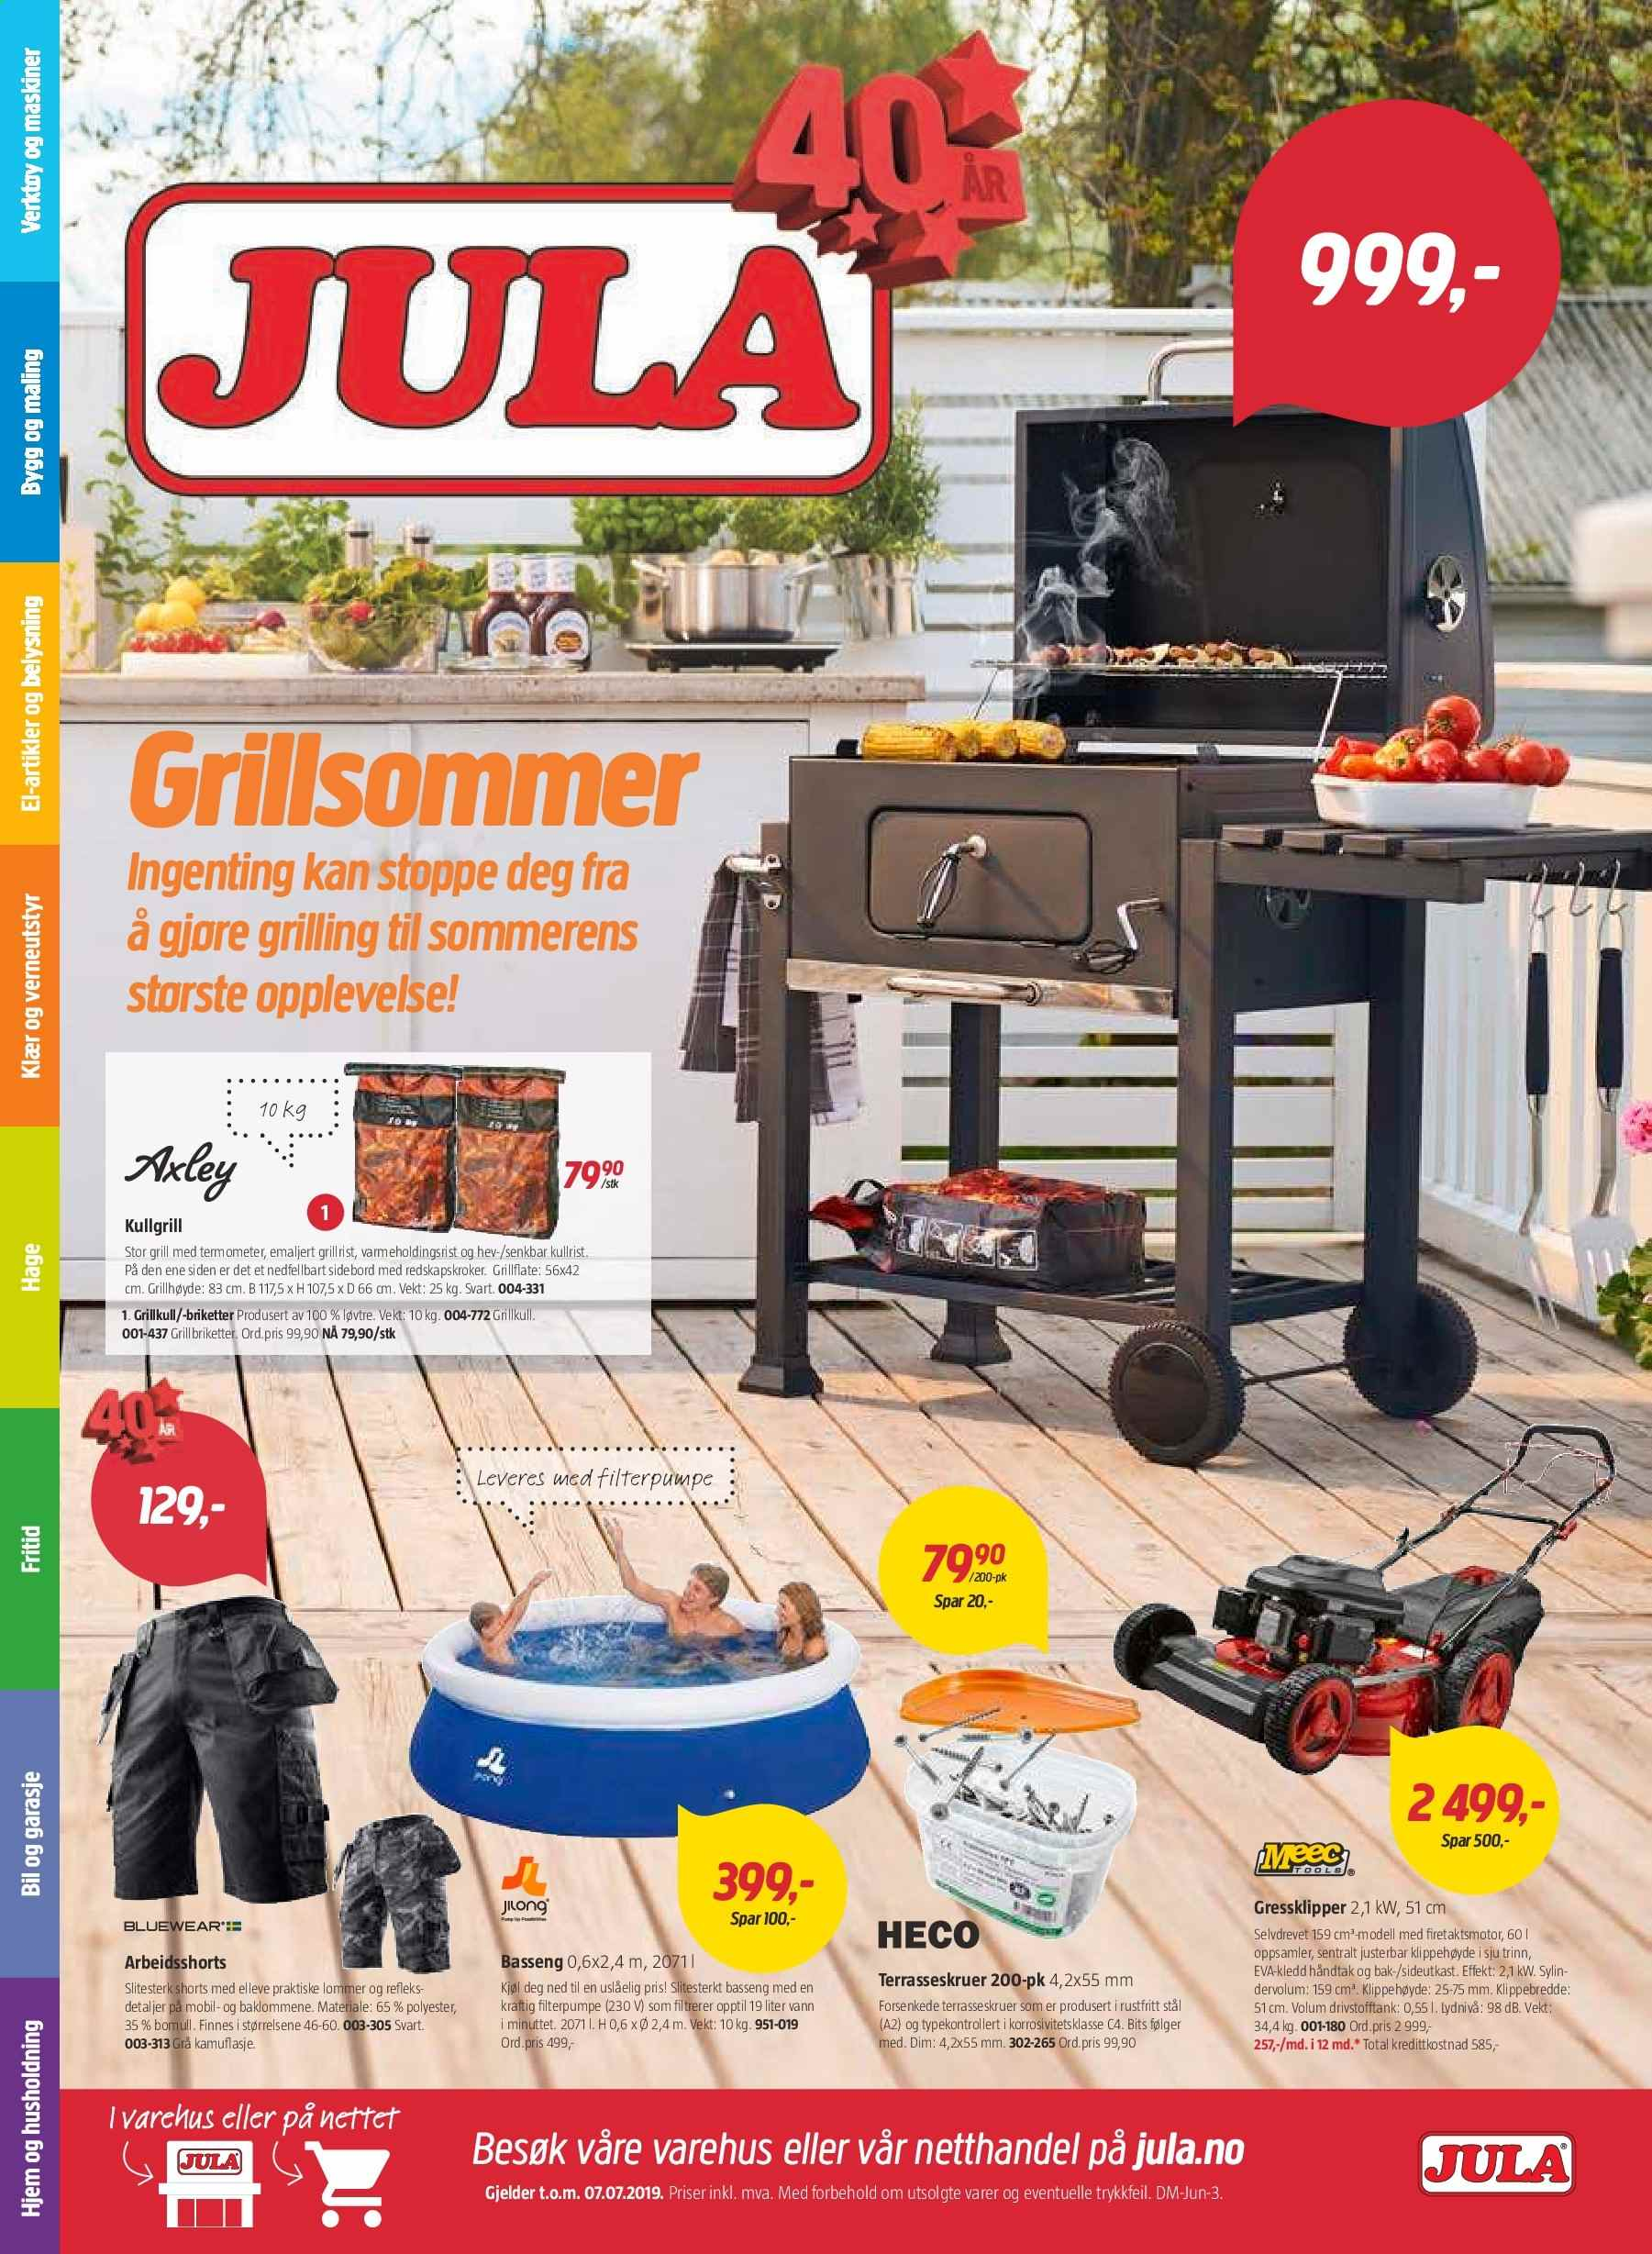 Kundeavis Jula - 21.06.2019 - 07.07.2019. Side 1.